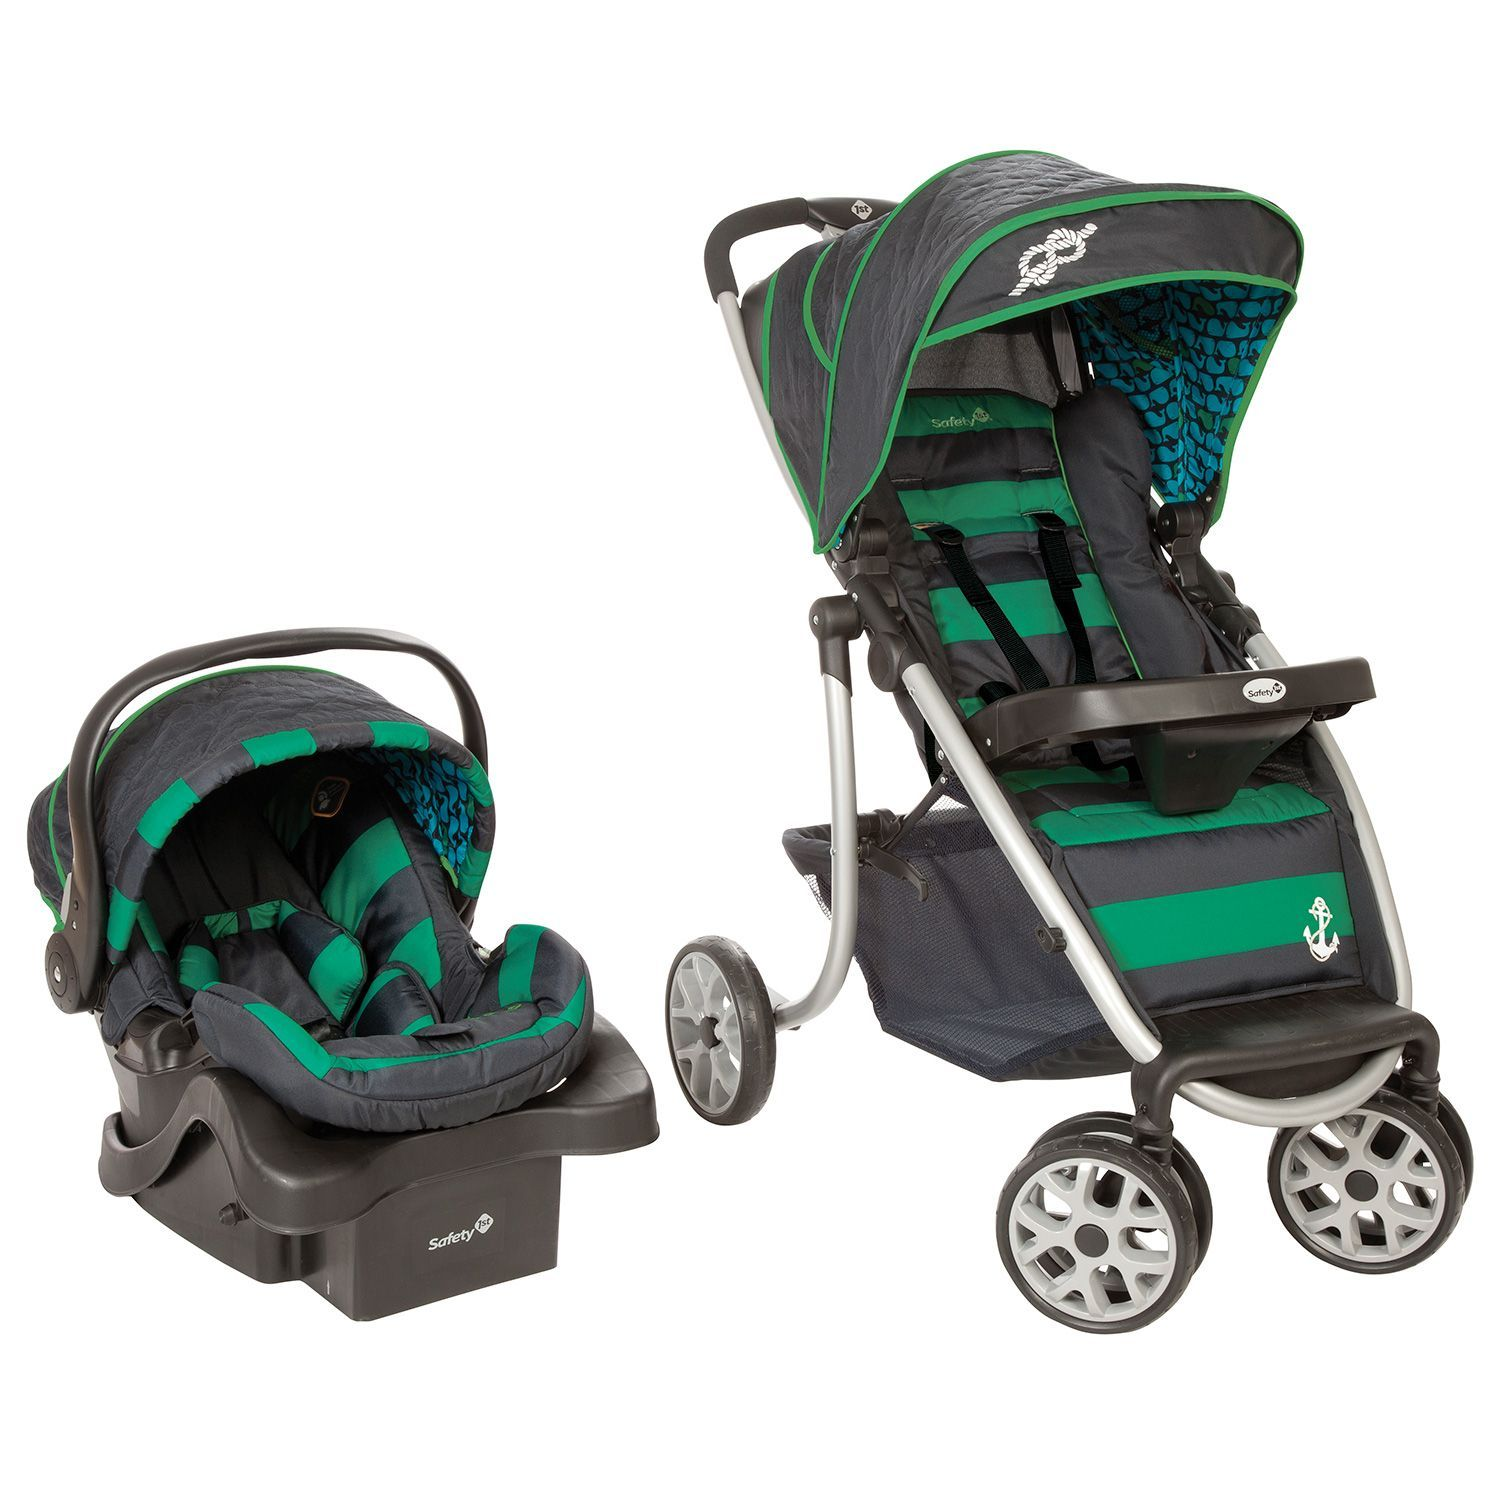 Safety 1st SleekRide Premier Travel System Sail Away